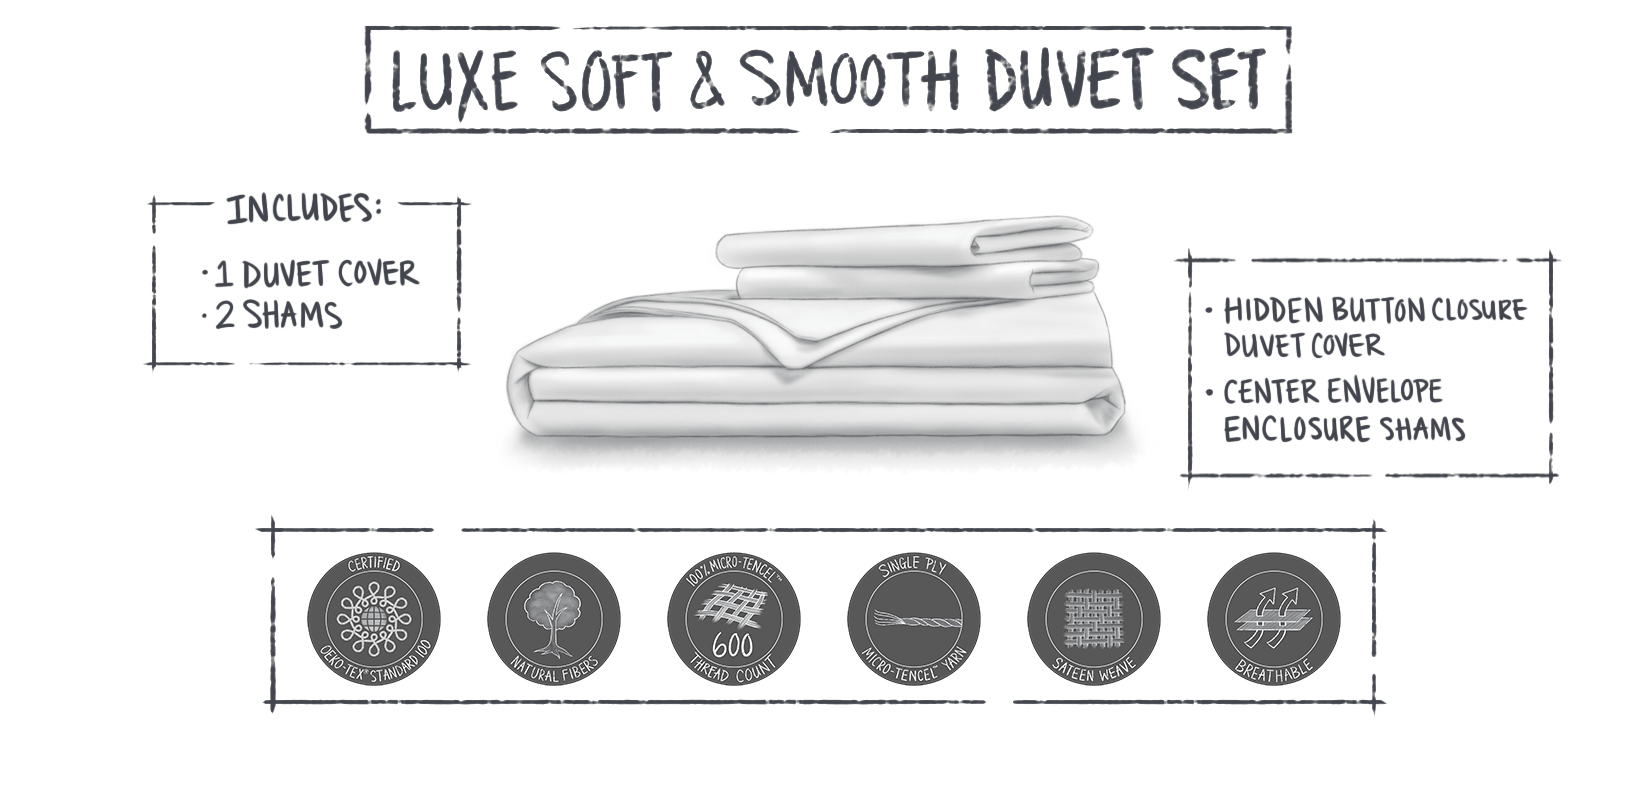 Luxe Soft Smooth duvet set_infographic_final_Apr 06 2018_Loraine Yow-min